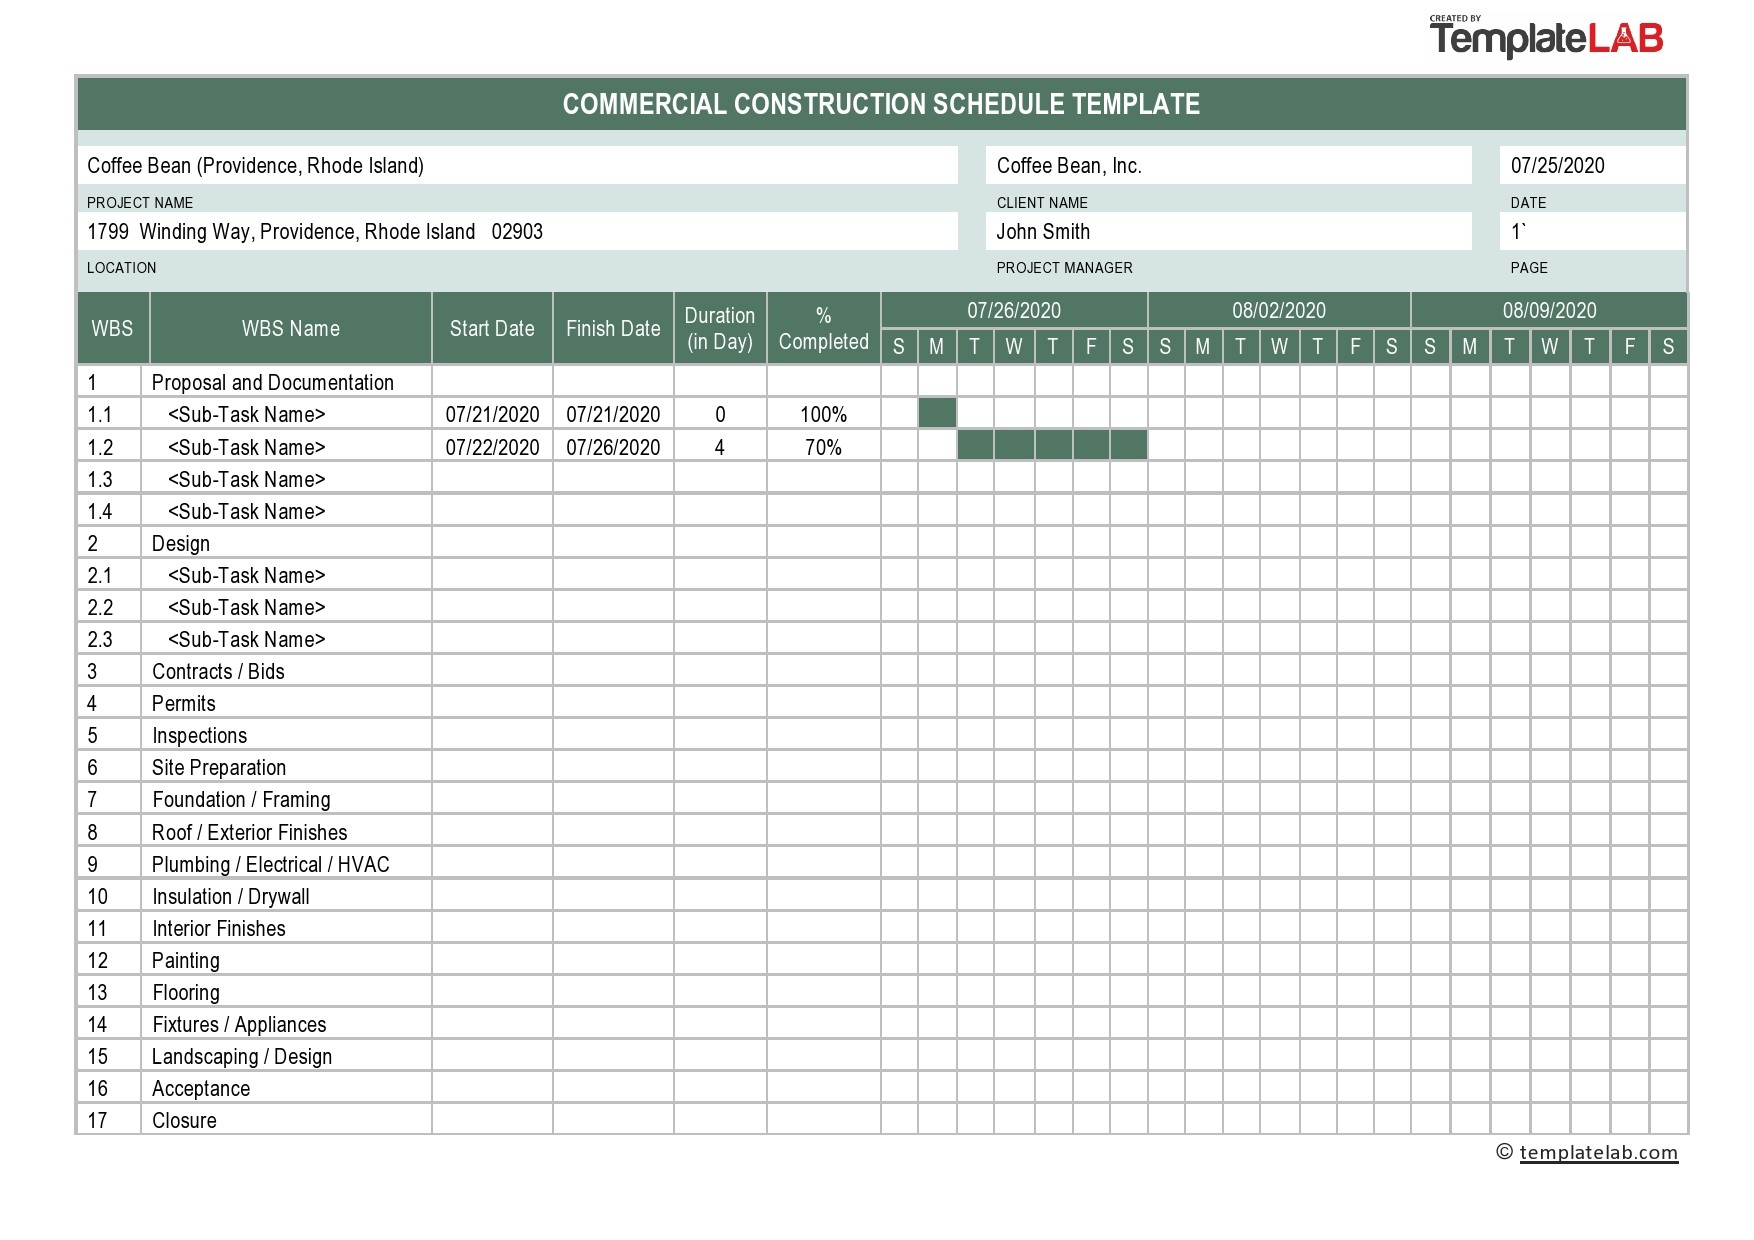 Free Commercial Construction Schedule - TemplateLab